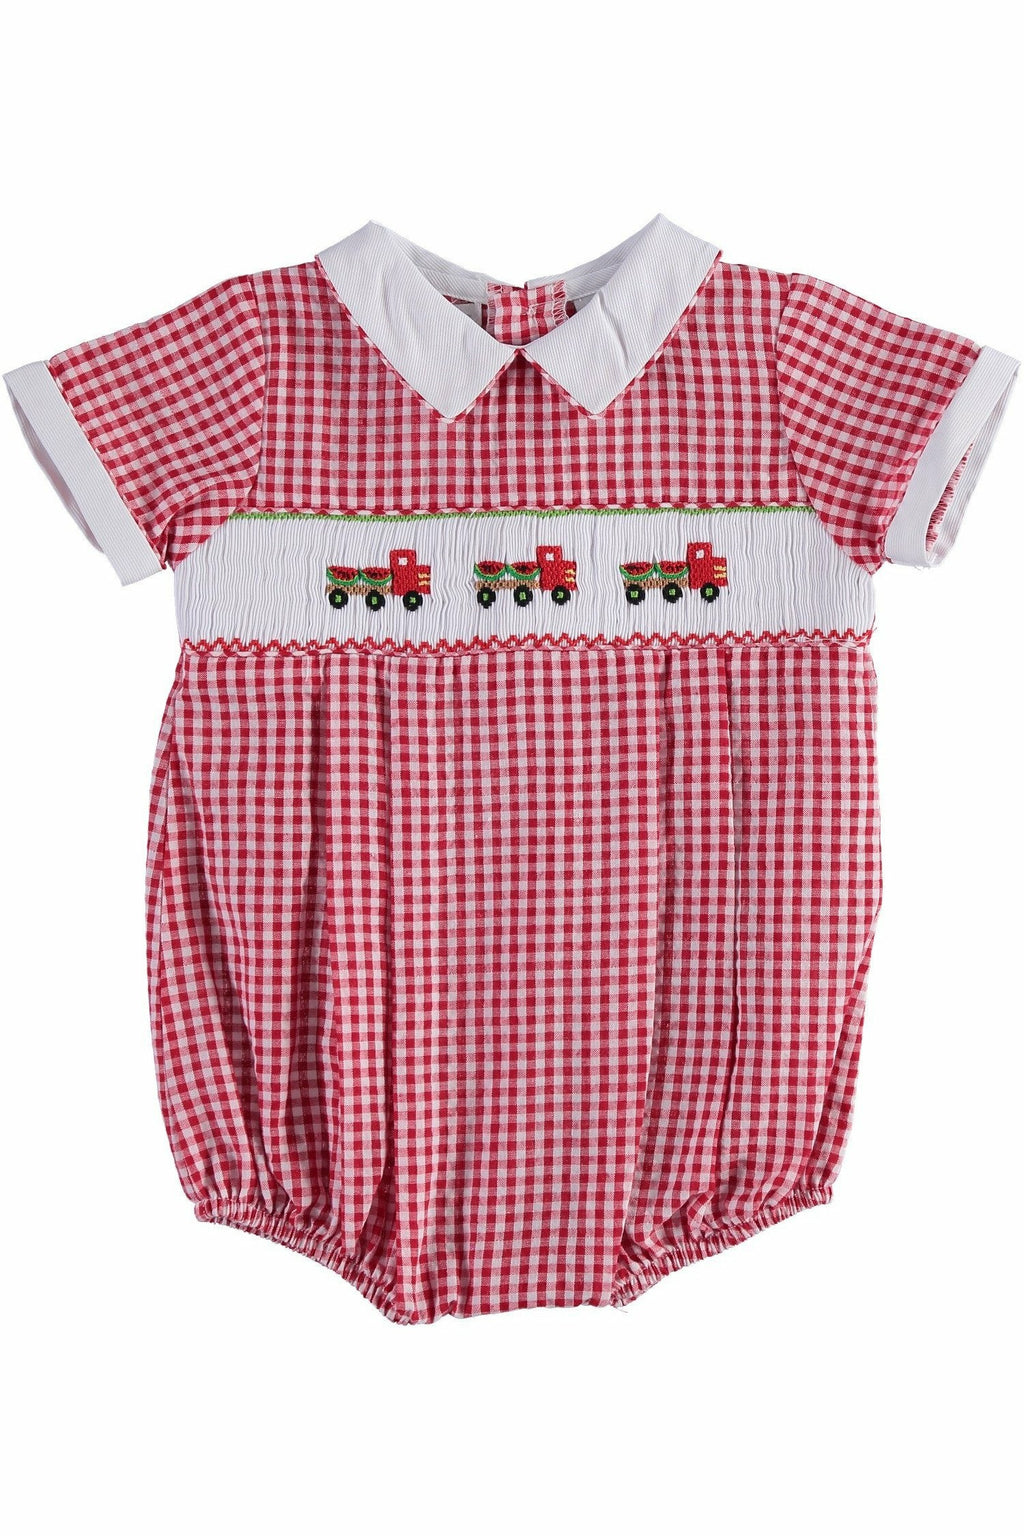 Carriage Boutique Baby Boy Red Checkered Creeper with Smocked Watermelon Truck